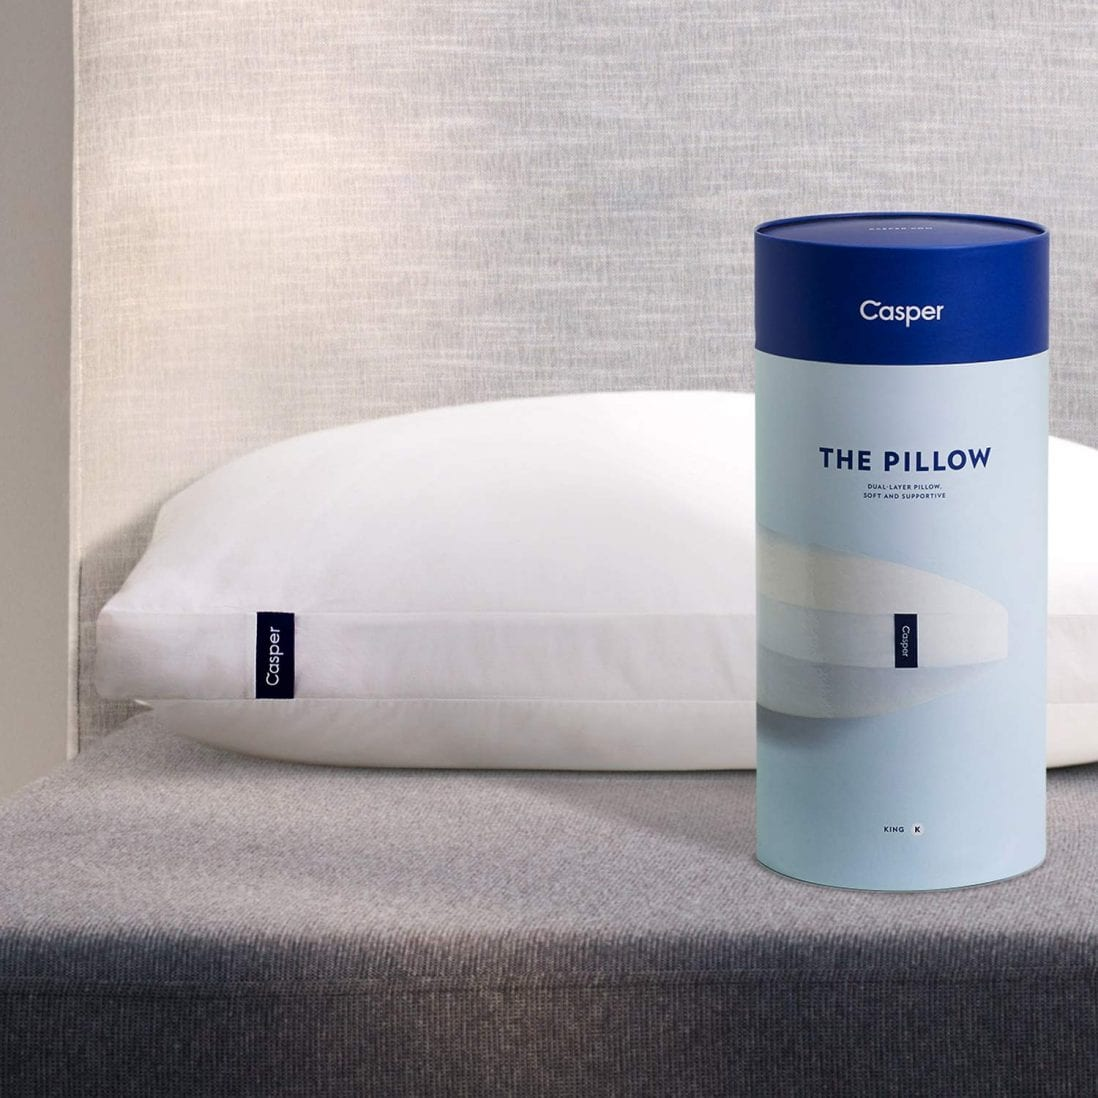 Casper Sleep most comfortable pillow review by www.dailysleep.org